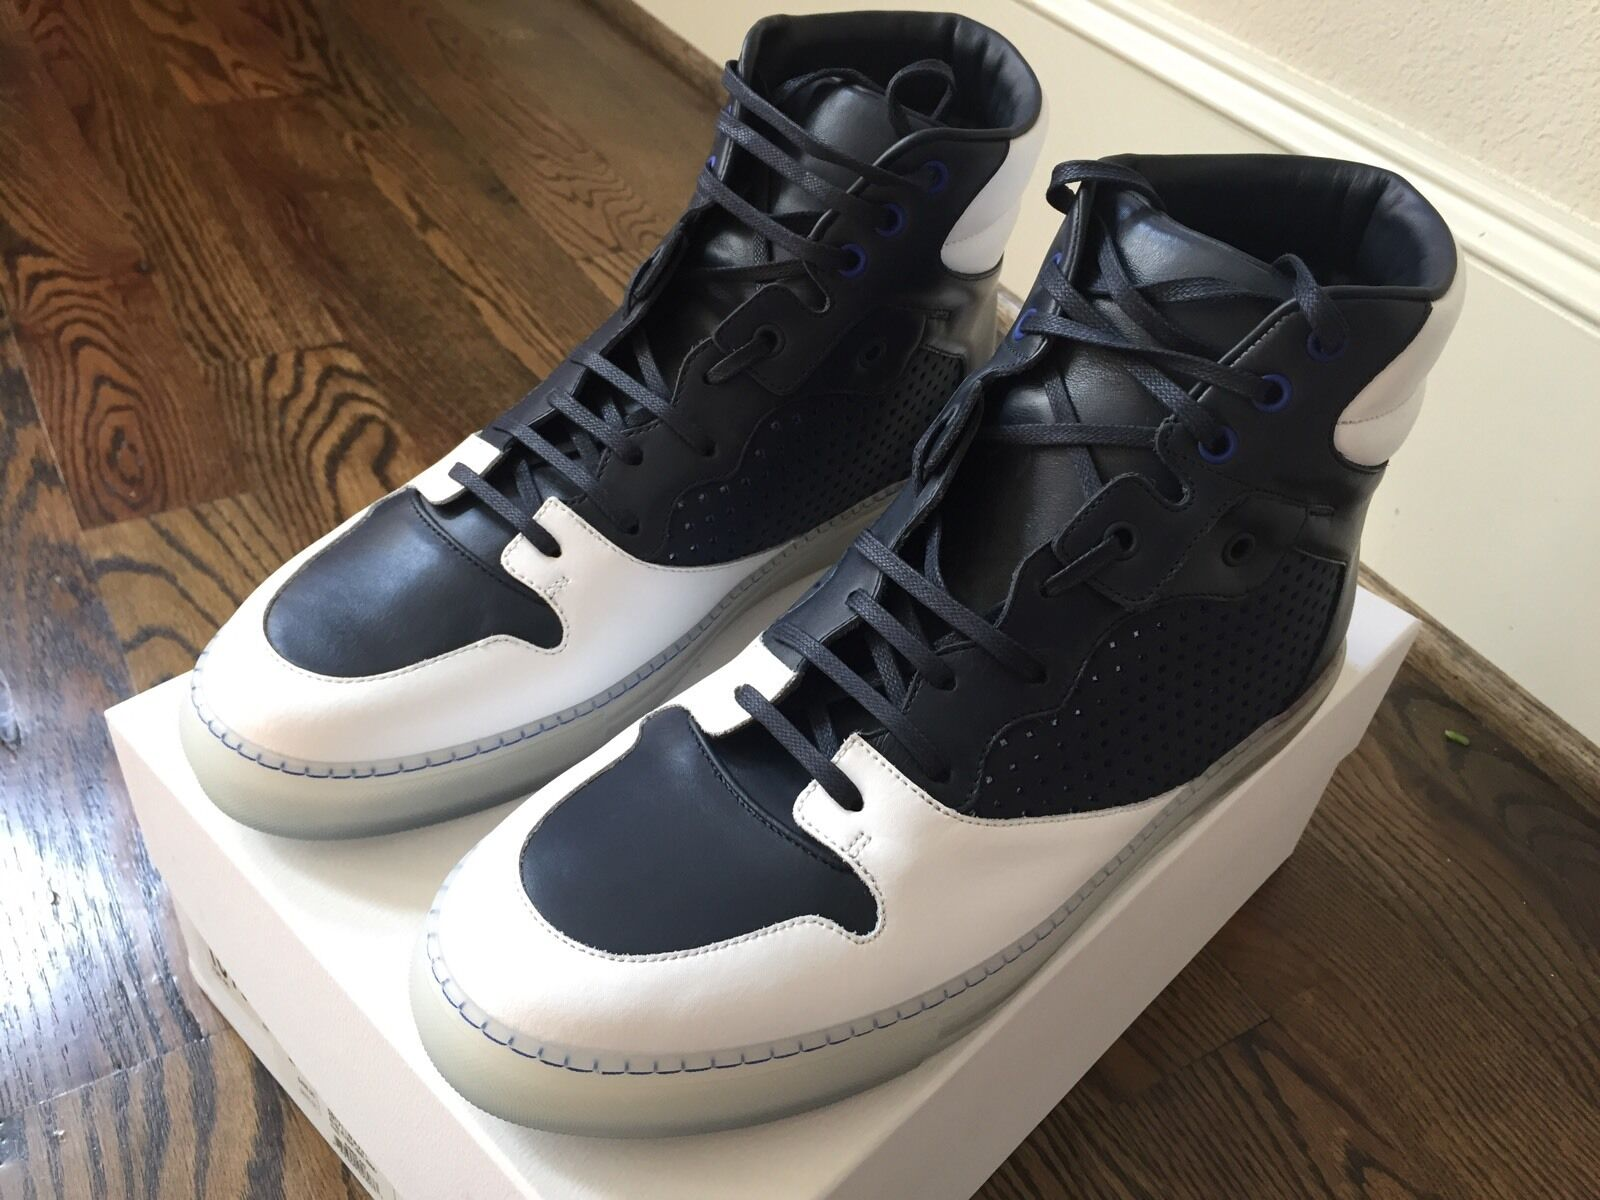 665  Balenciaga Pelle High Tops  size   14 or EU 47 Made in Italy